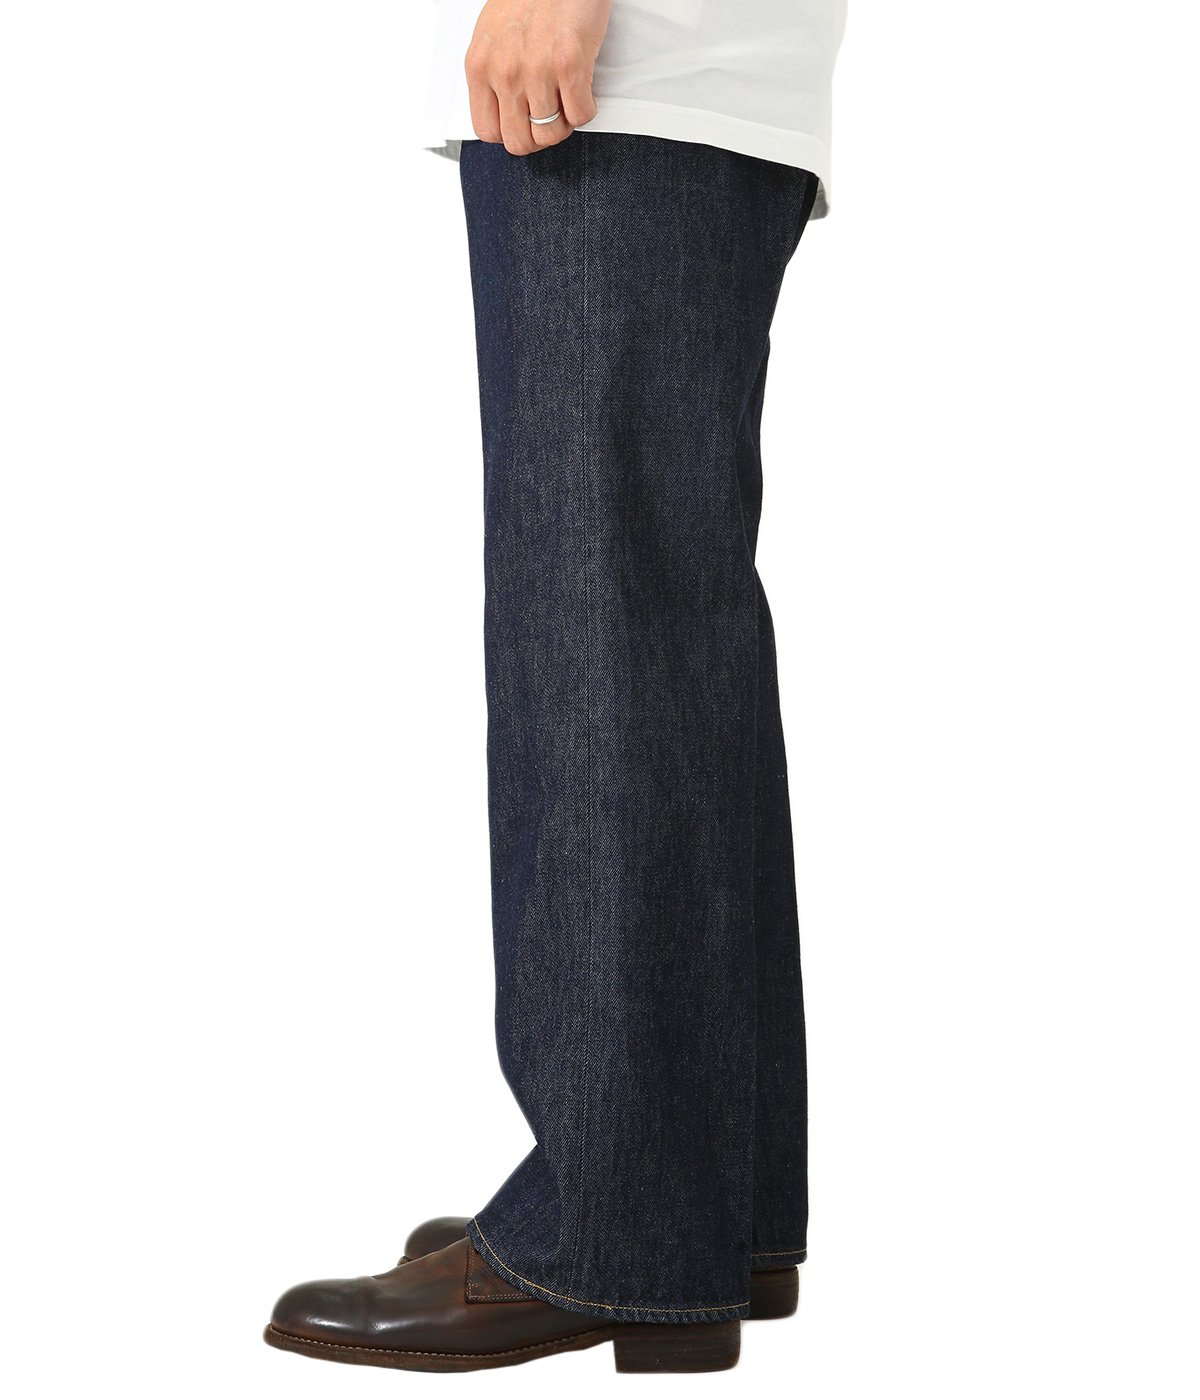 HARD TWIST DENIM 5P PANTS